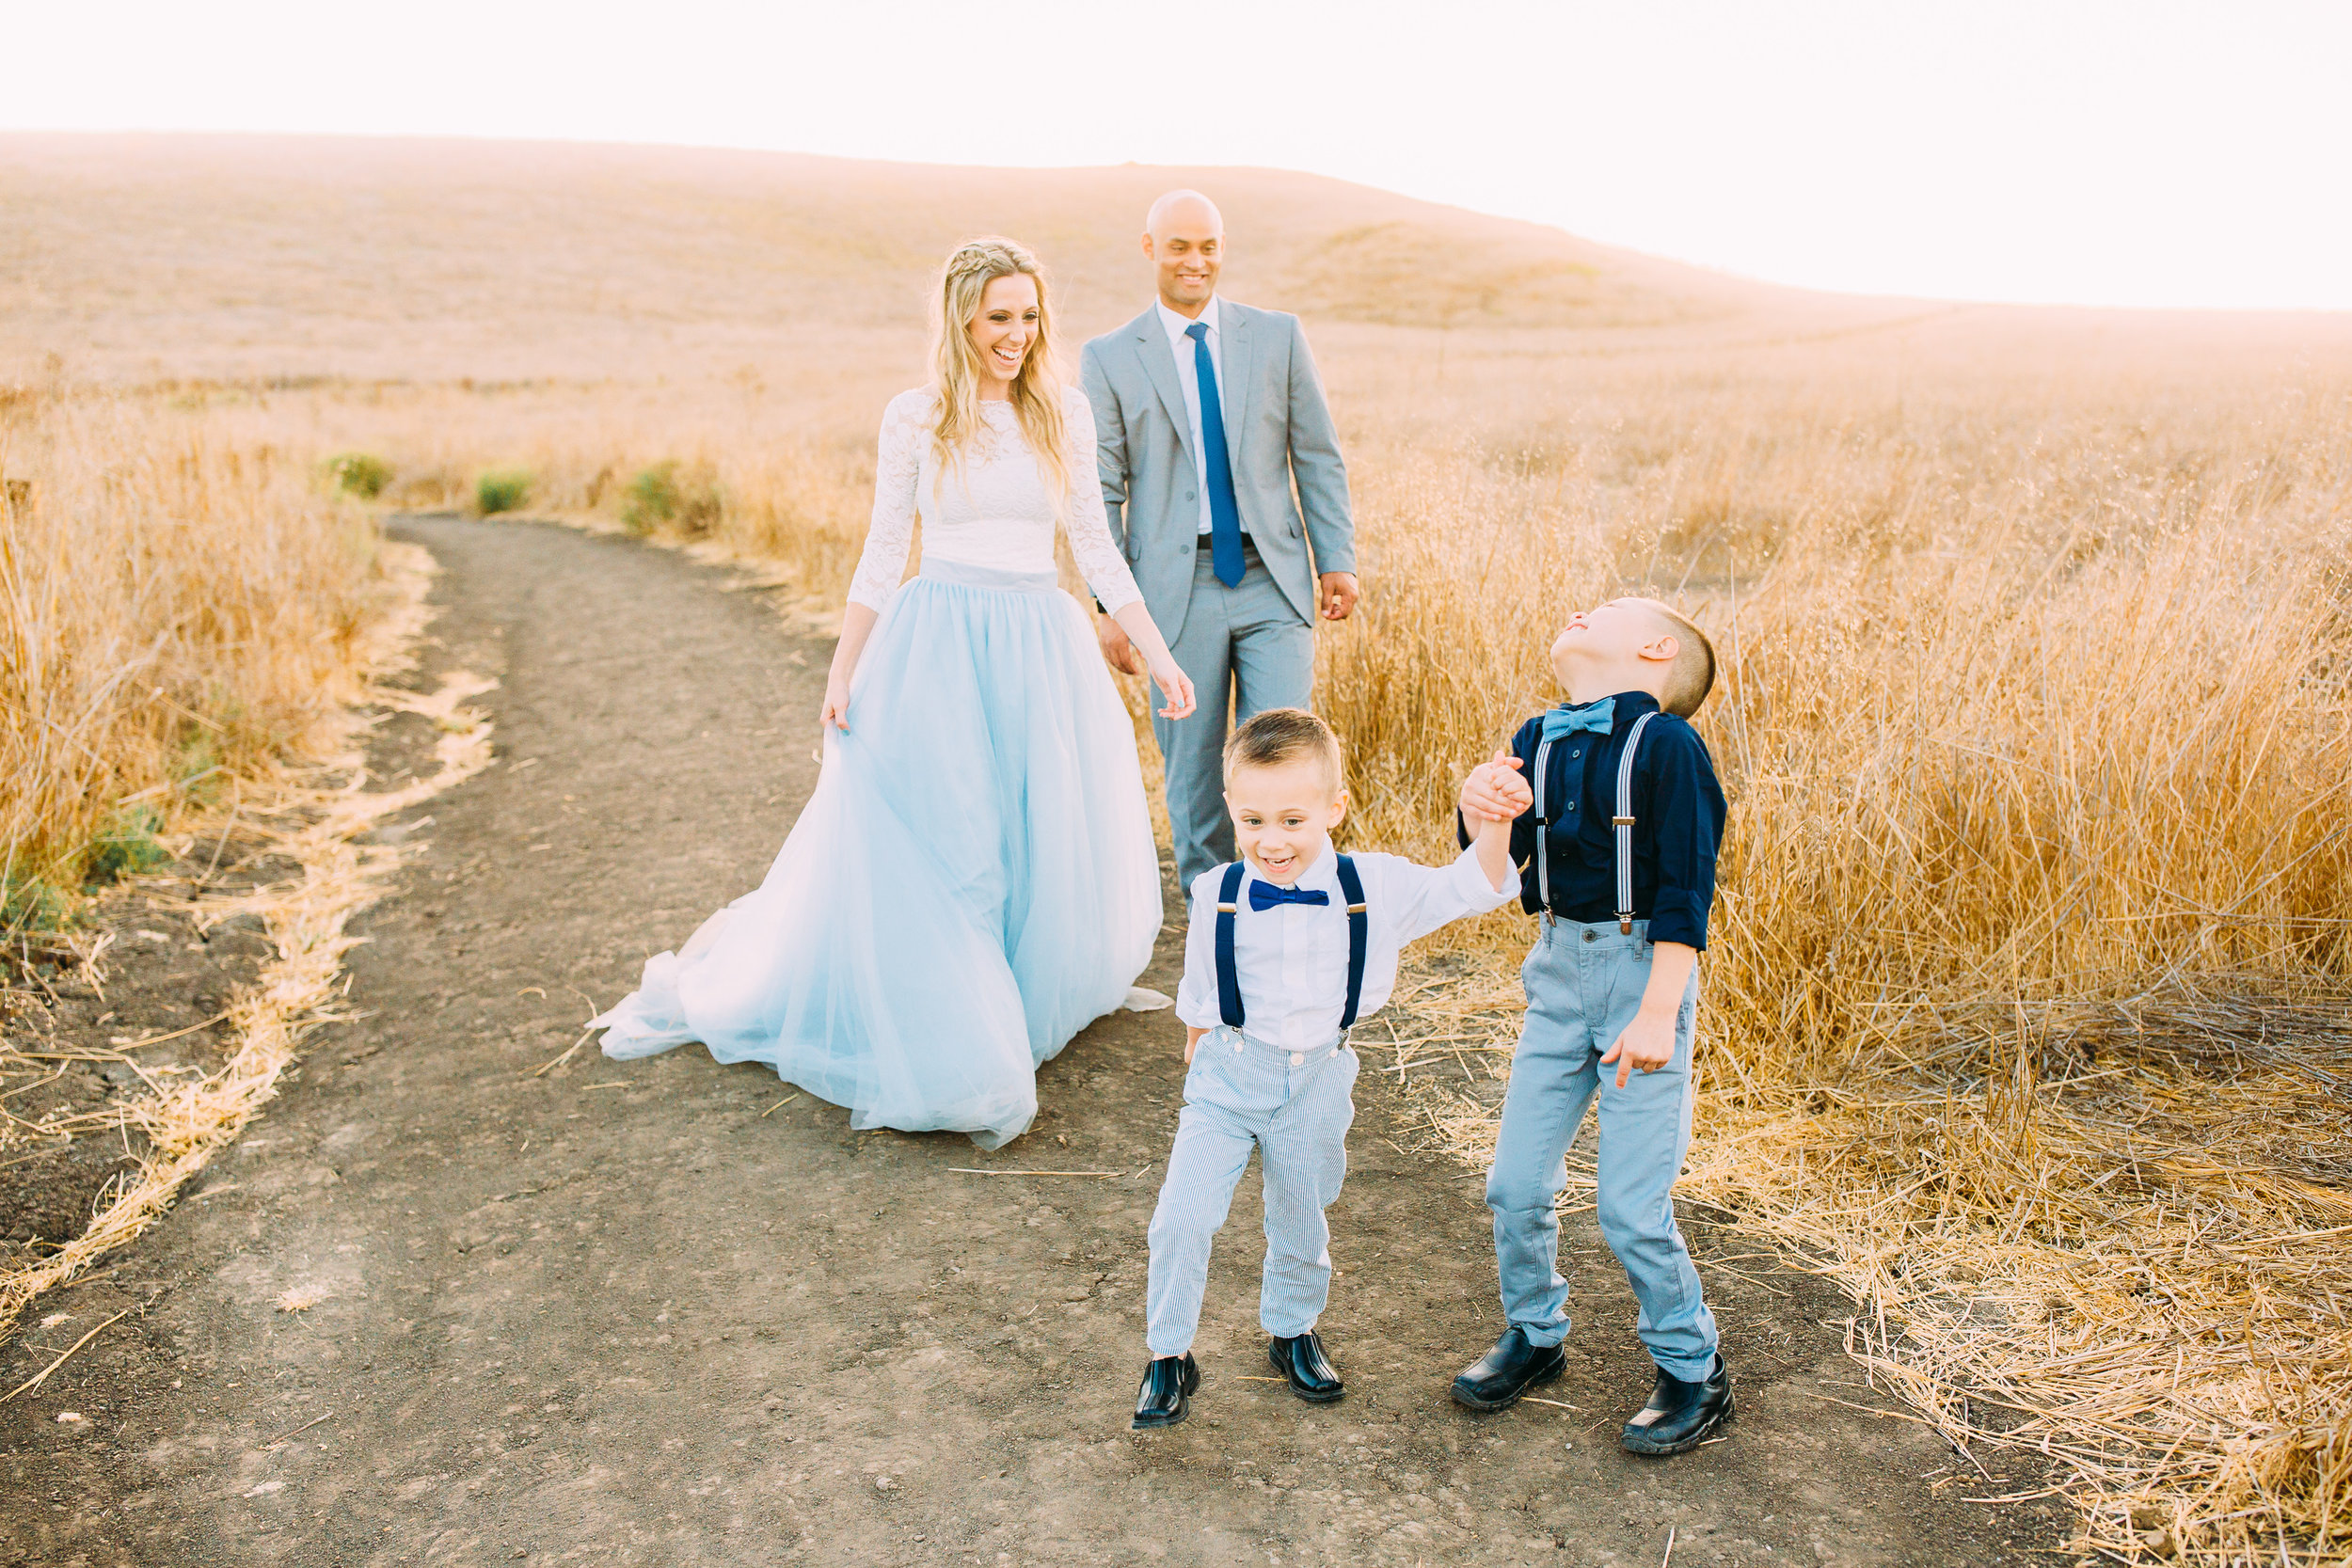 family photo session in Orange County, CA